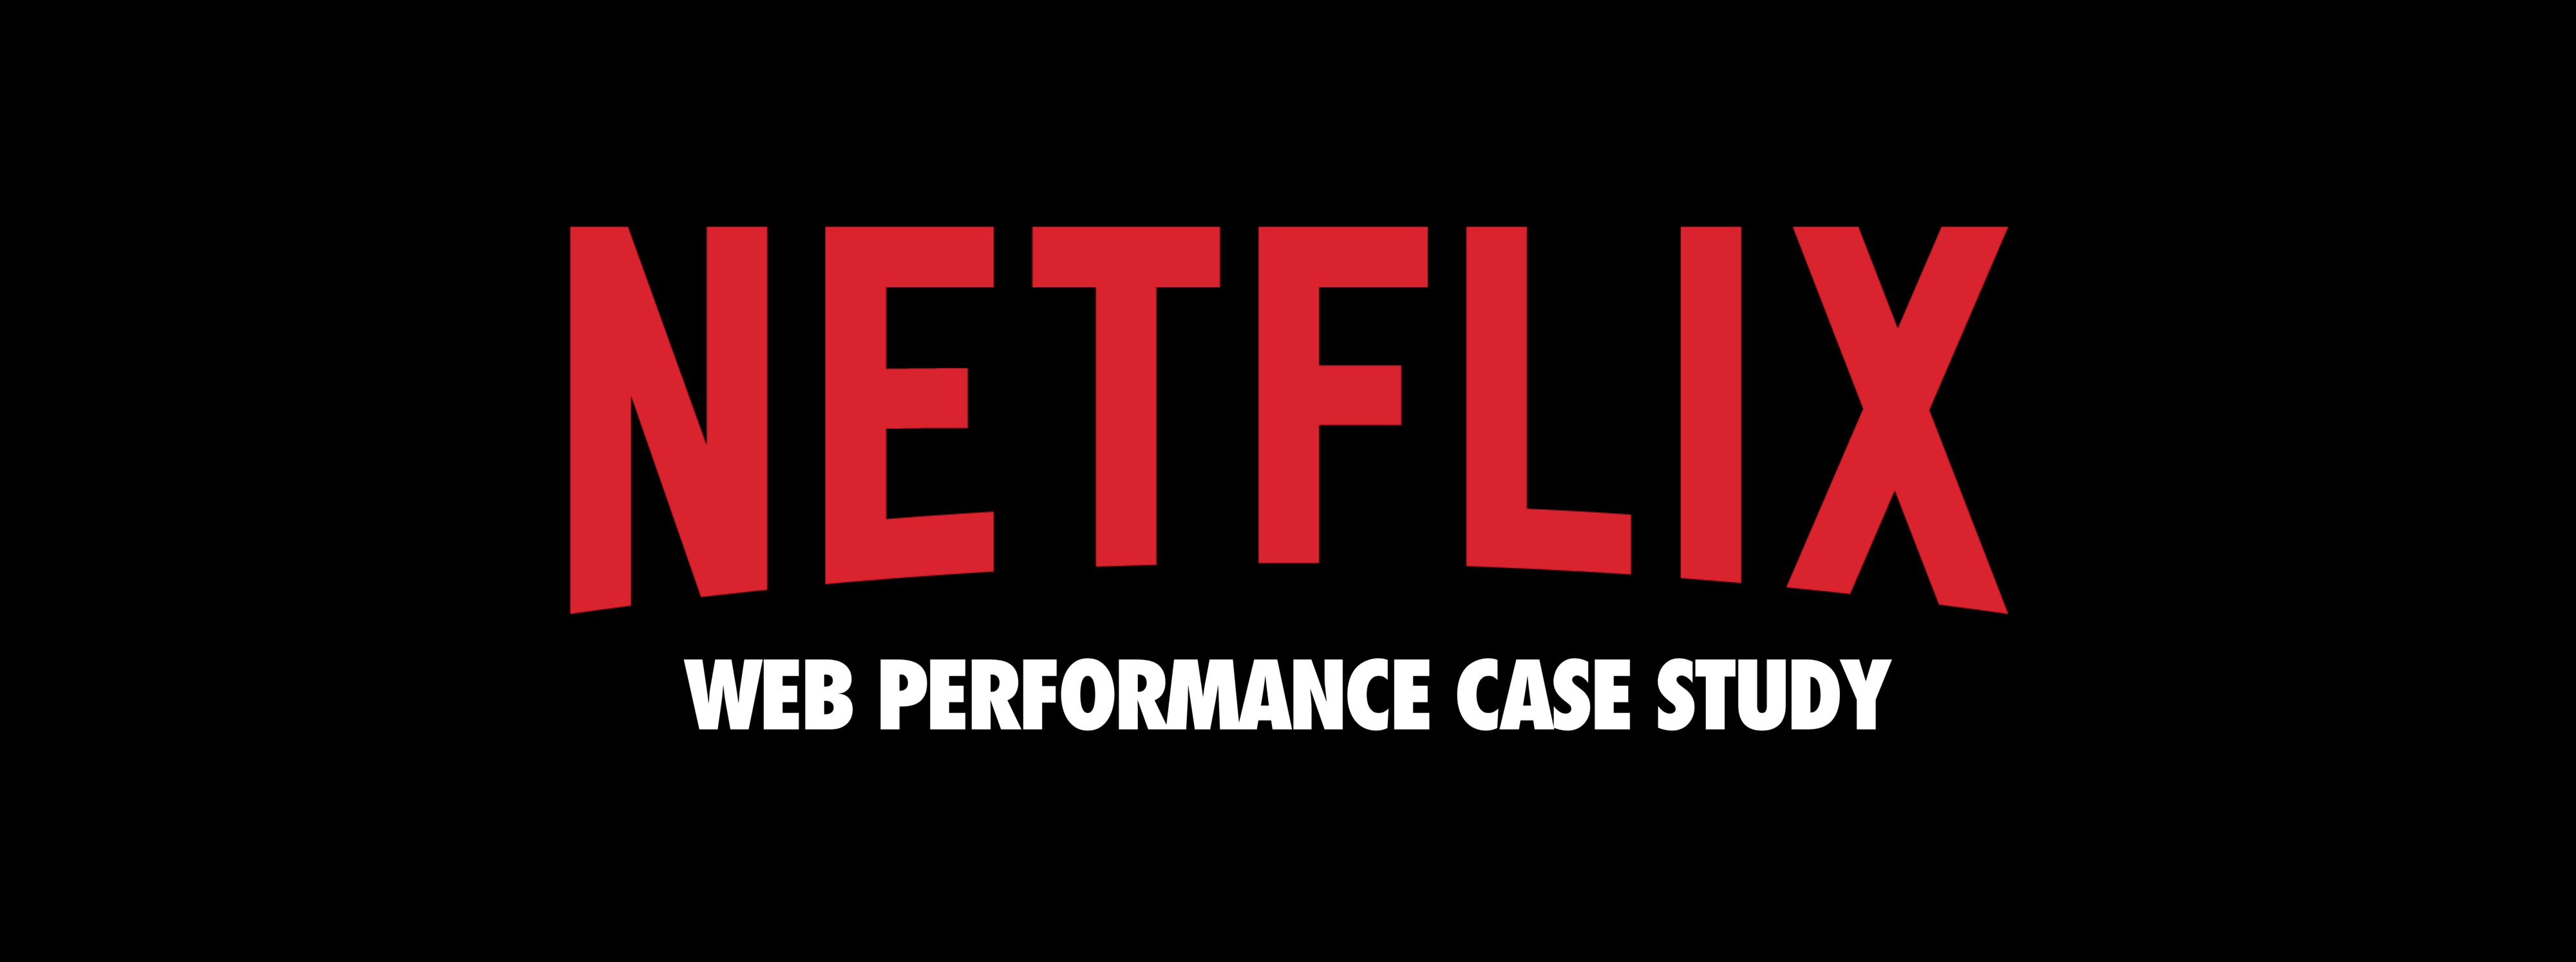 A Netflix Web Performance Case Study - Dev Channel - Medium